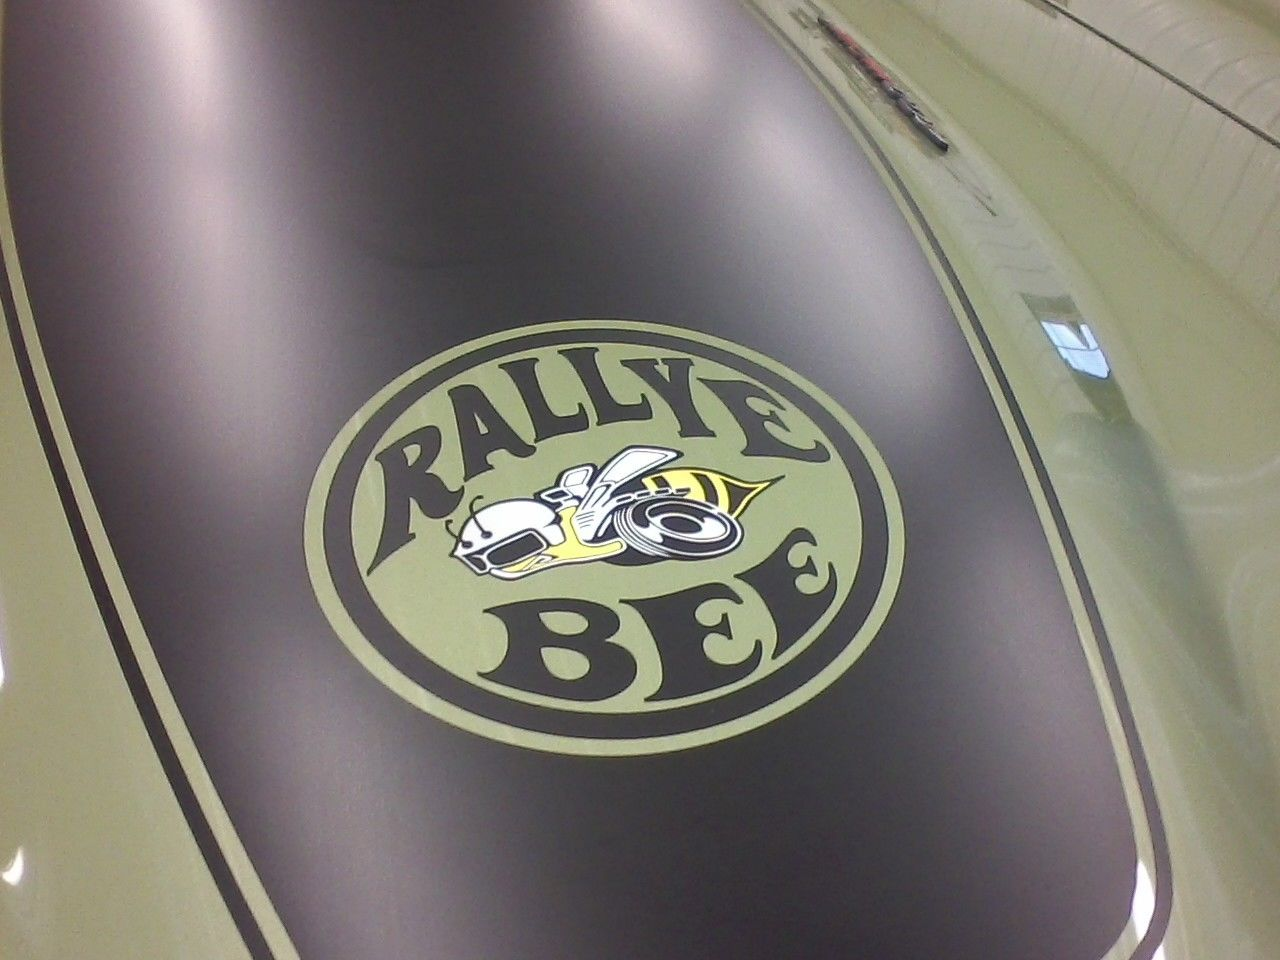 1972-Dodge-Charger-Rallye-Bee-emblem